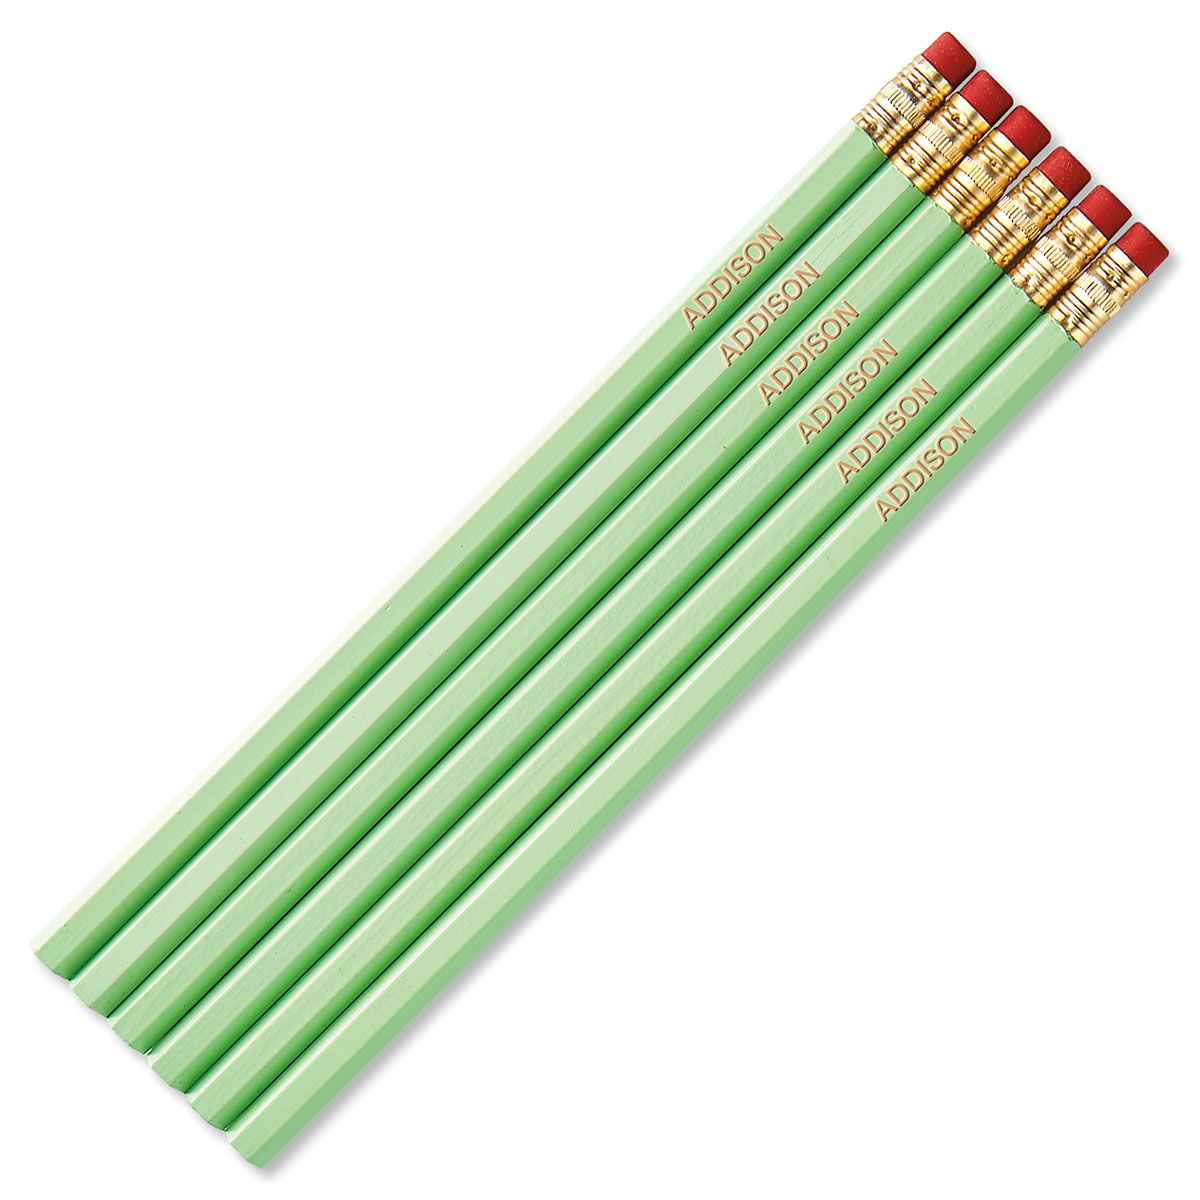 Personalized Pencils - 616595C